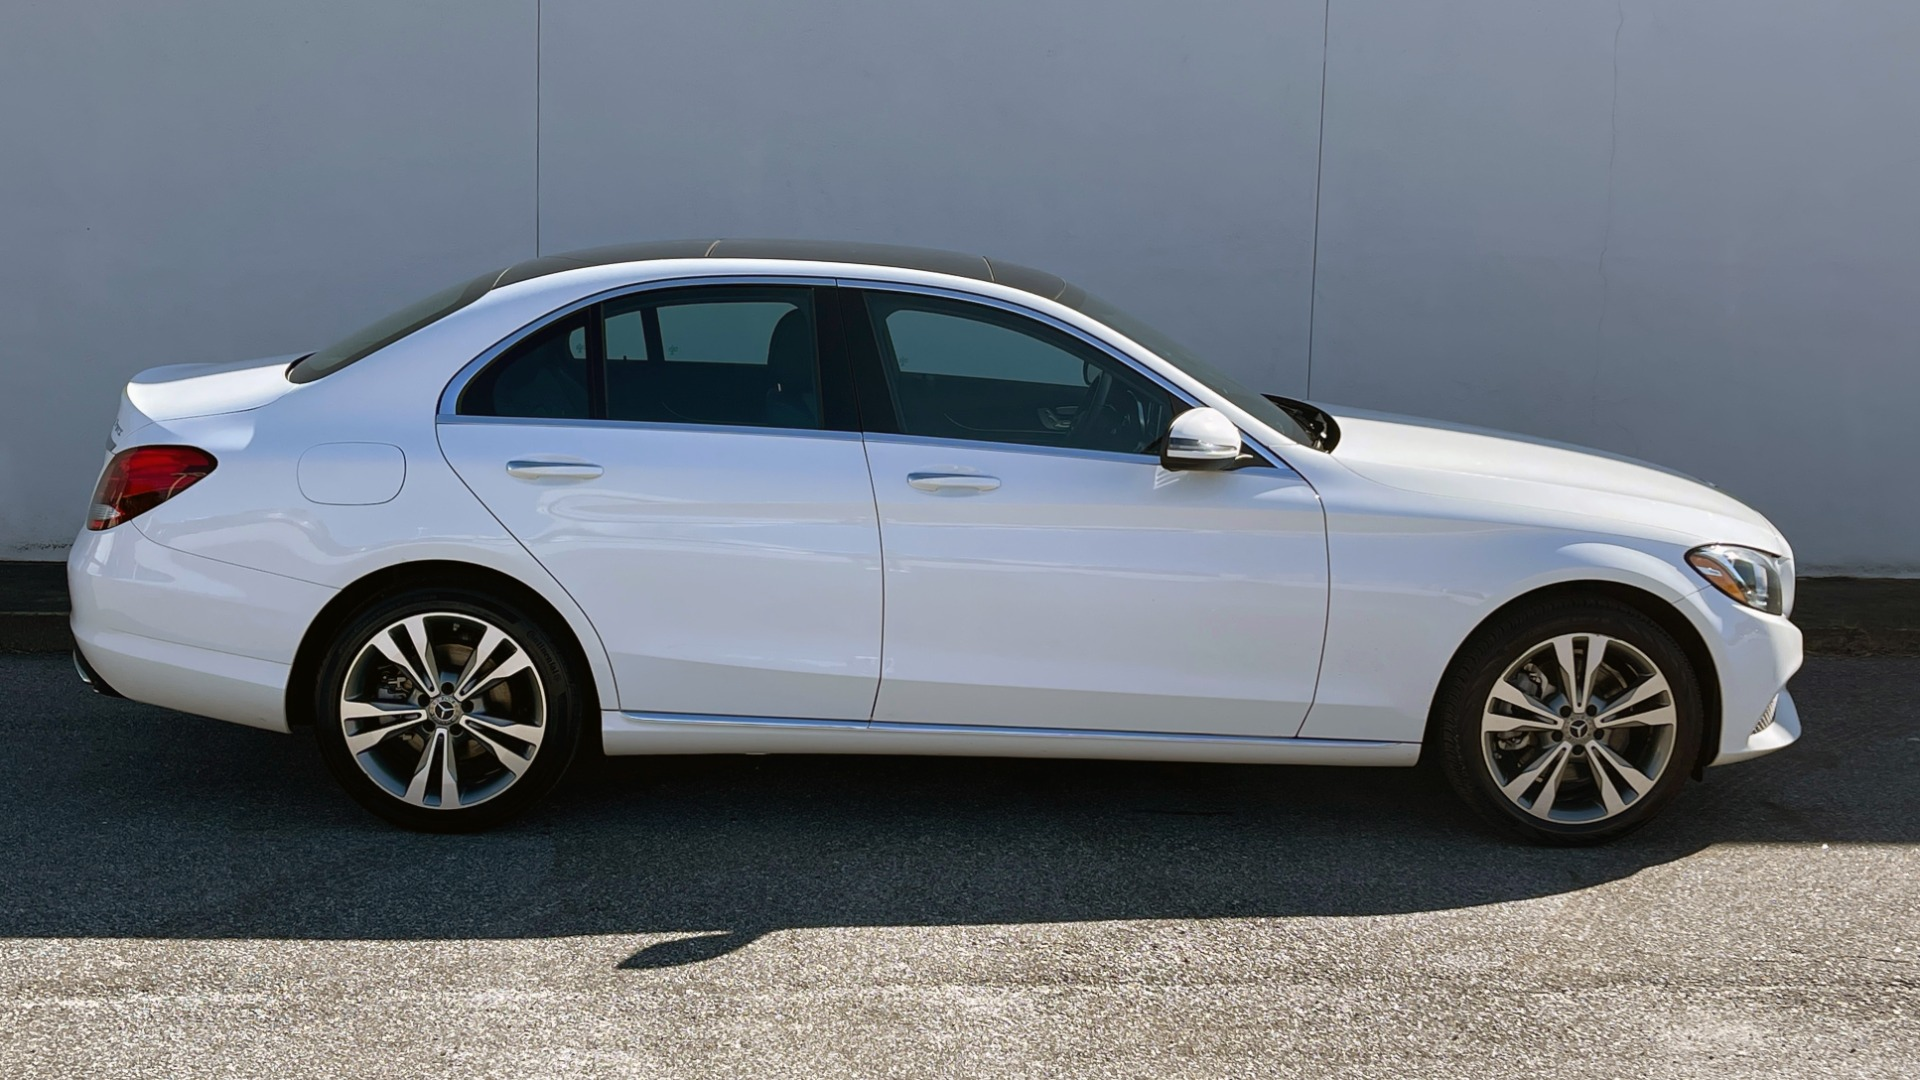 Used 2018 Mercedes-Benz C-CLASS C 300 4MATIC PREMIUM / SMARTPHONE INTEG / PANO-ROOF / REARVIEW for sale $30,995 at Formula Imports in Charlotte NC 28227 6